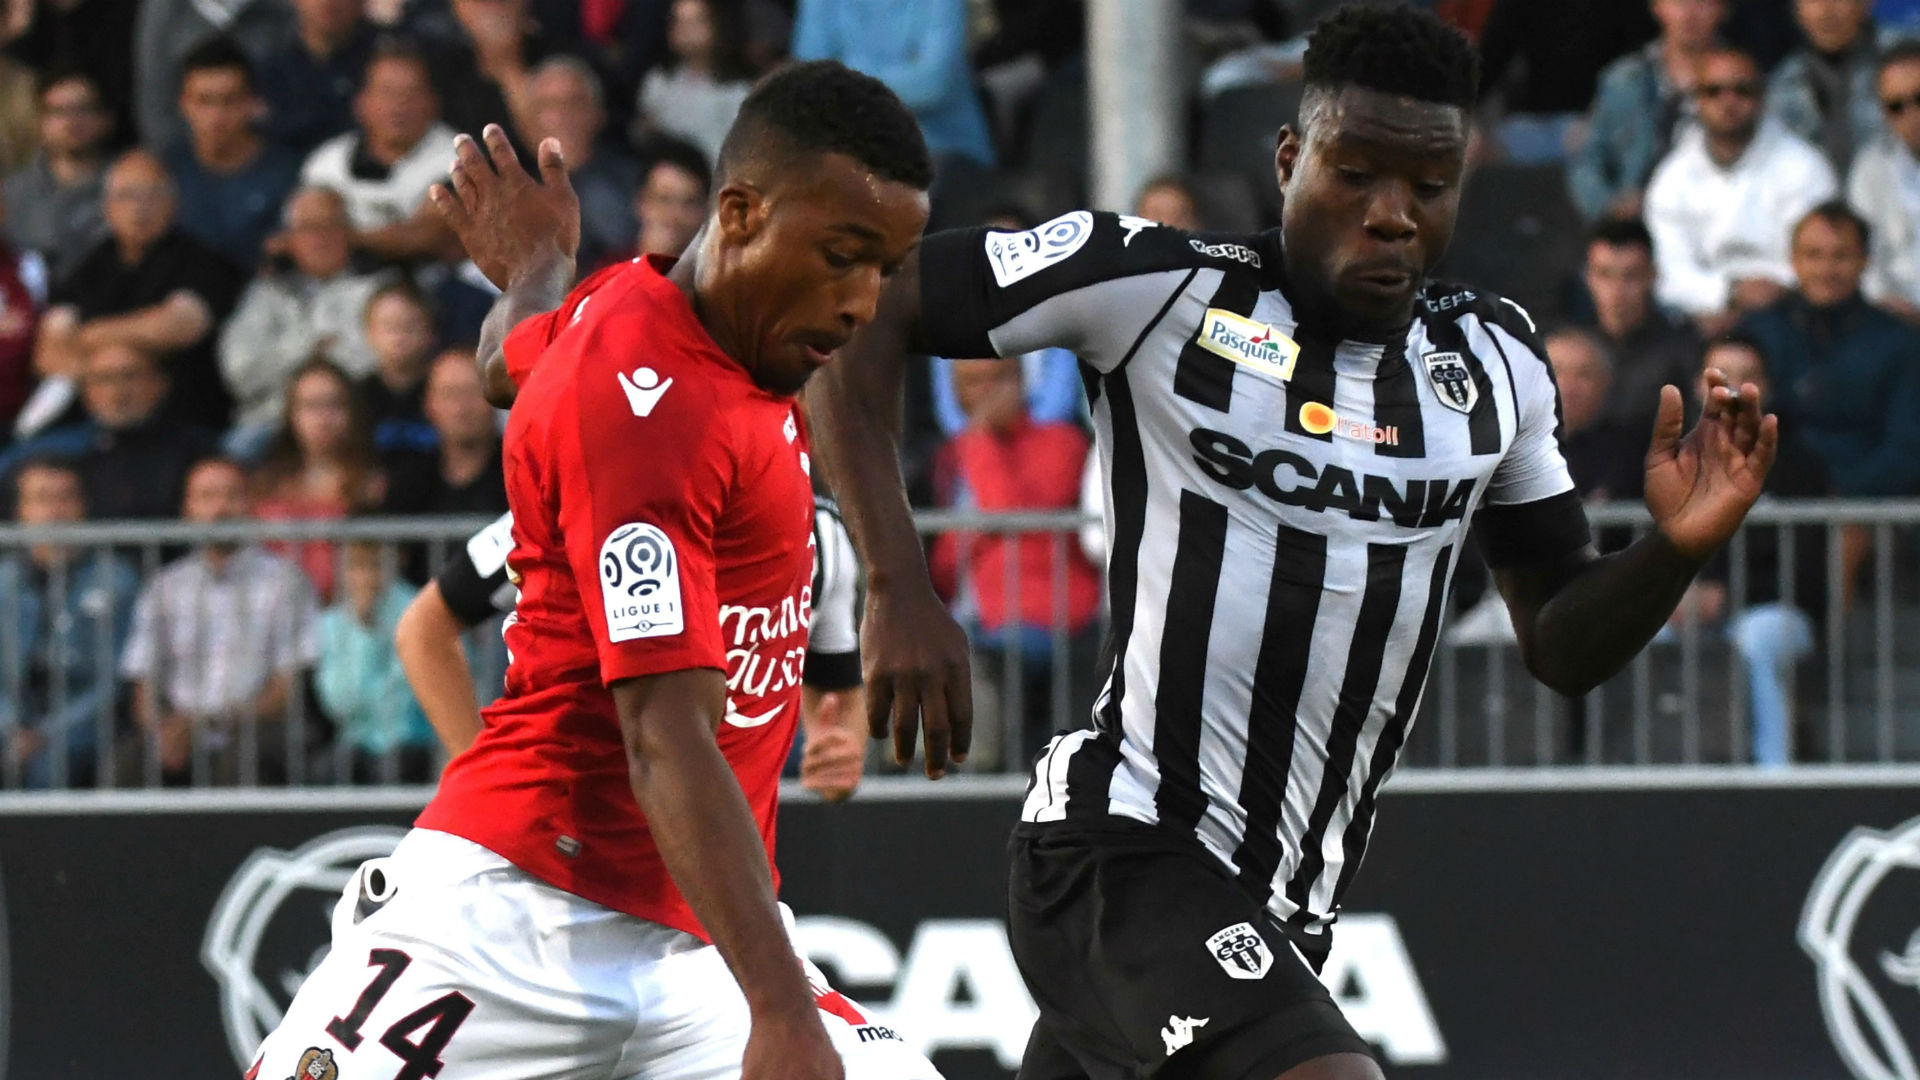 Officiel : Abdoulaye Bamba signe à Angers